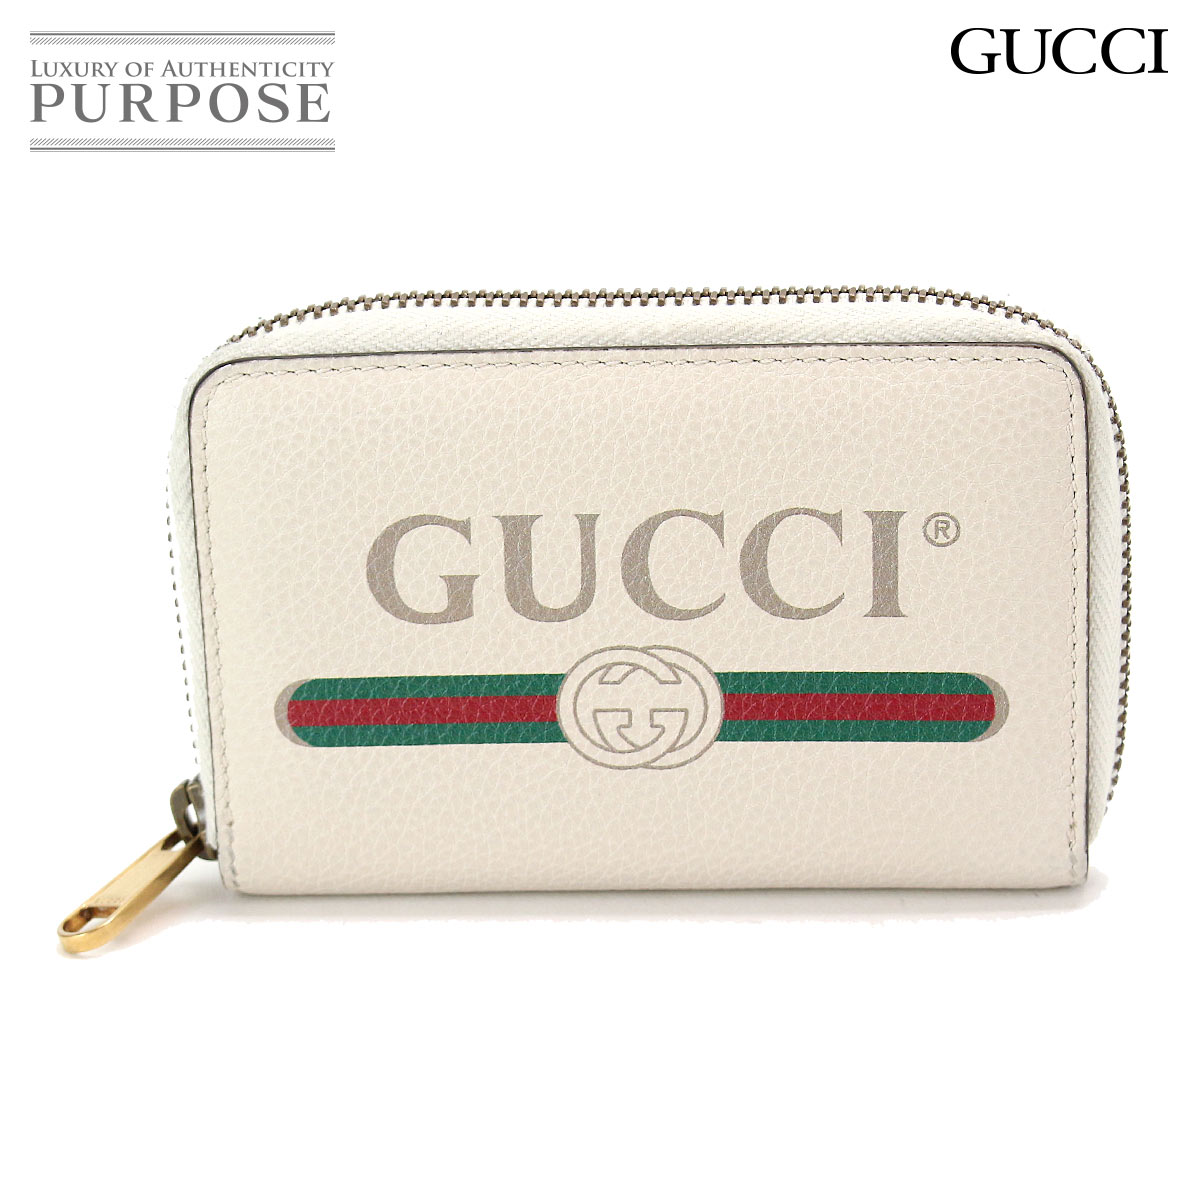 6d3c2d15ab4 Gucci GUCCI Gucci print card case coin case leather off-white 496319 493075   used  brand